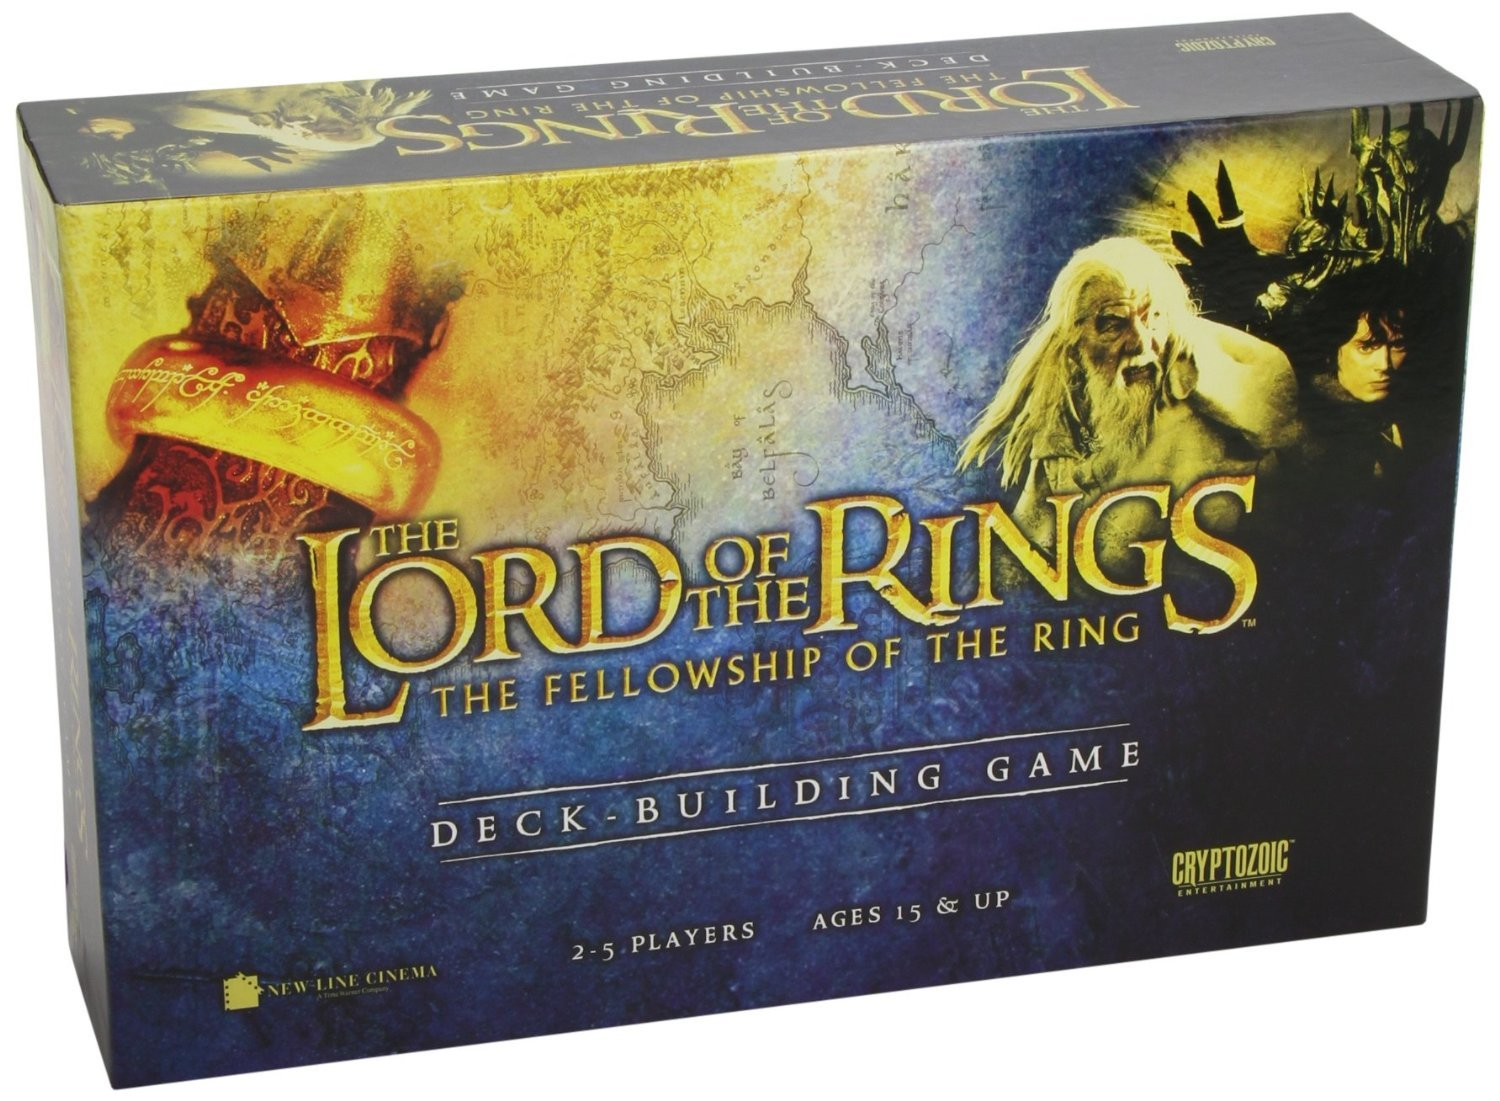 【初回限定お試し価格】 Lord of The The Rings: The Fellowship The of Deck The Ring Deck Building Game[並行輸入品] B01LXCJ54Z, BUNSEIDOスポーツ:4ace1b97 --- arianechie.dominiotemporario.com